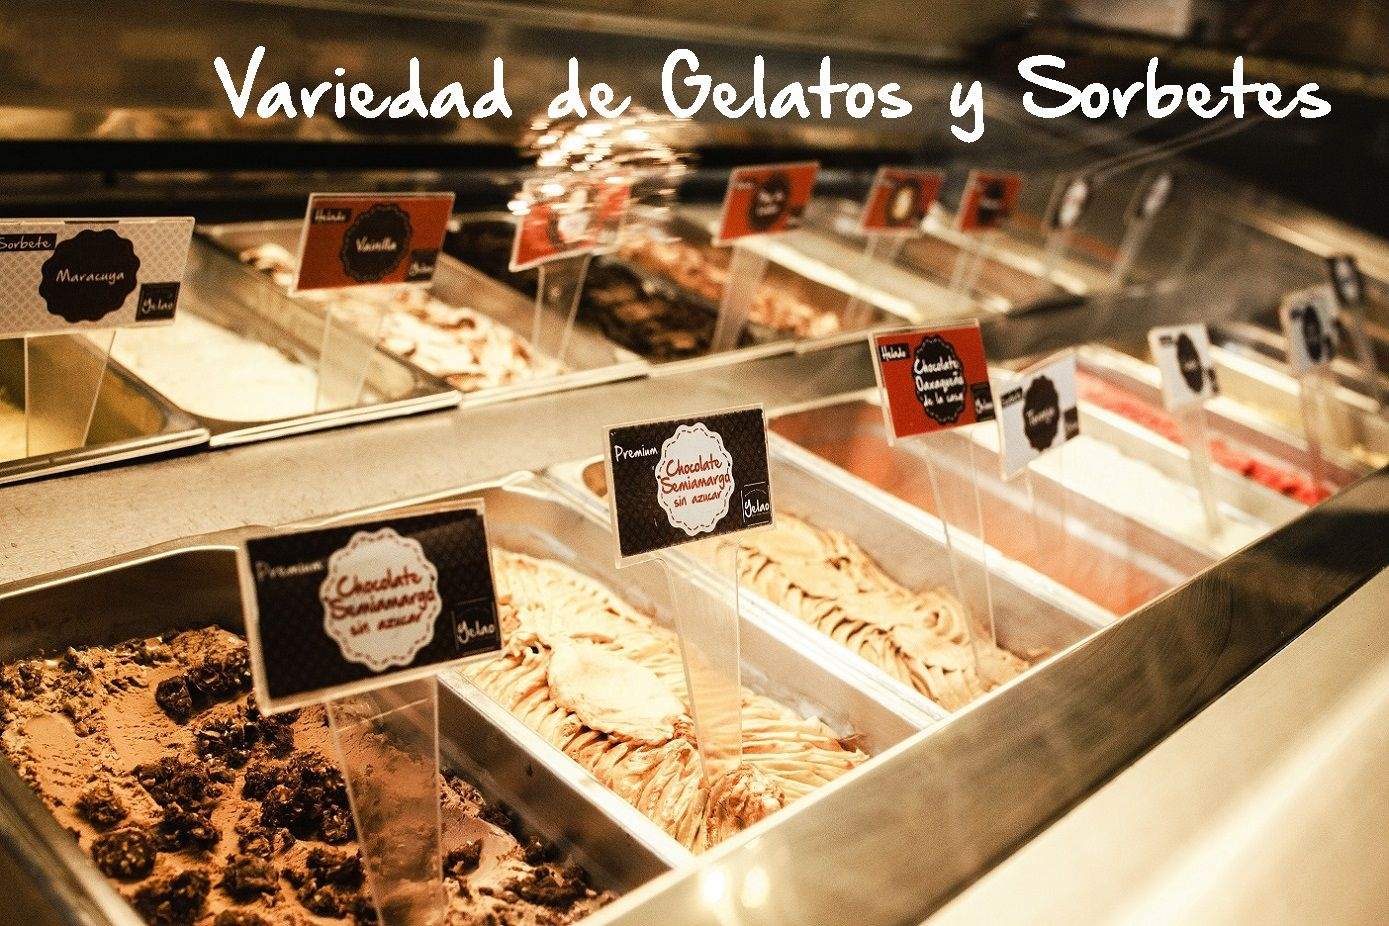 Barra de gelatos y sorbetes.